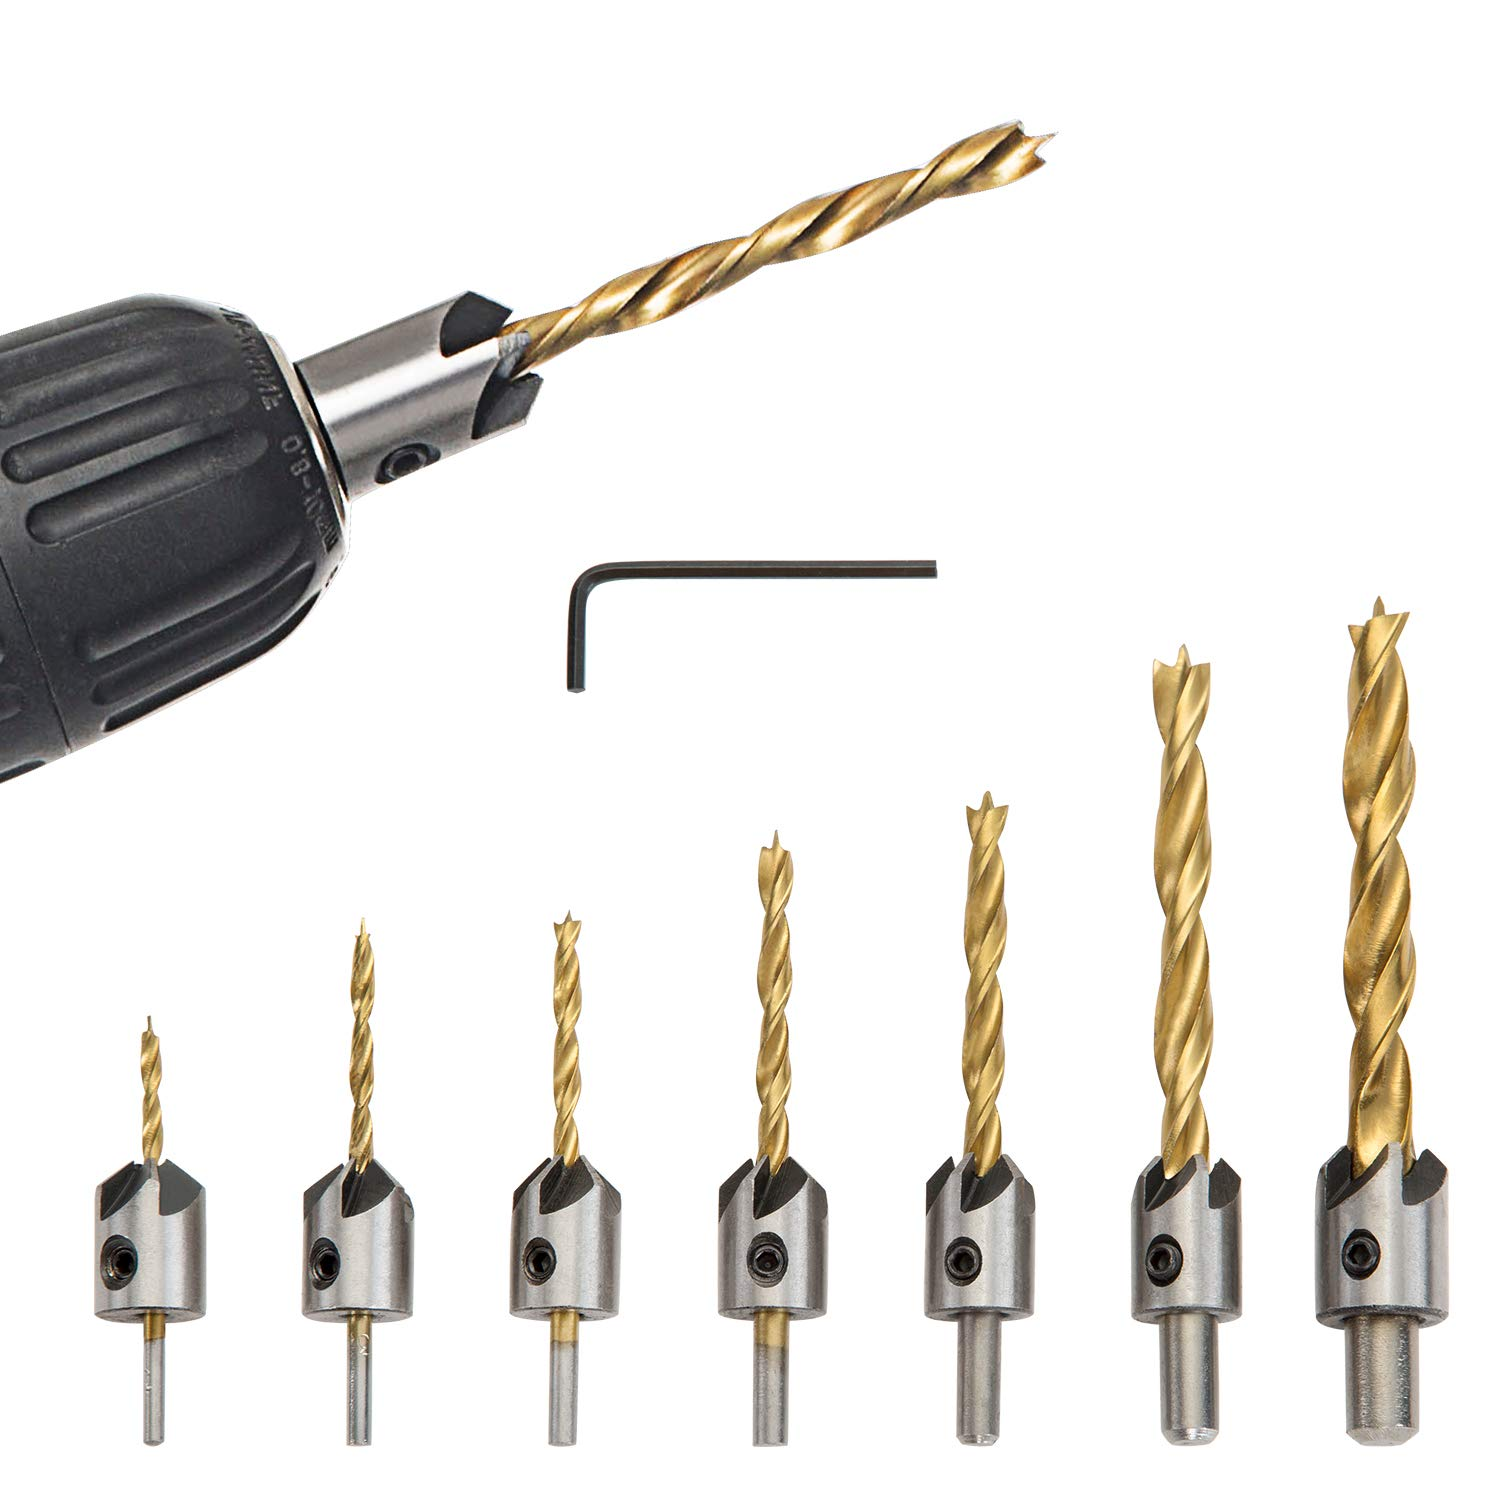 Countersink Drill Bit Set 8 Pieces Three Pointed High Speed Steel Drill with One L-Wrench for Wood Drilling or Woodworking Chamfer